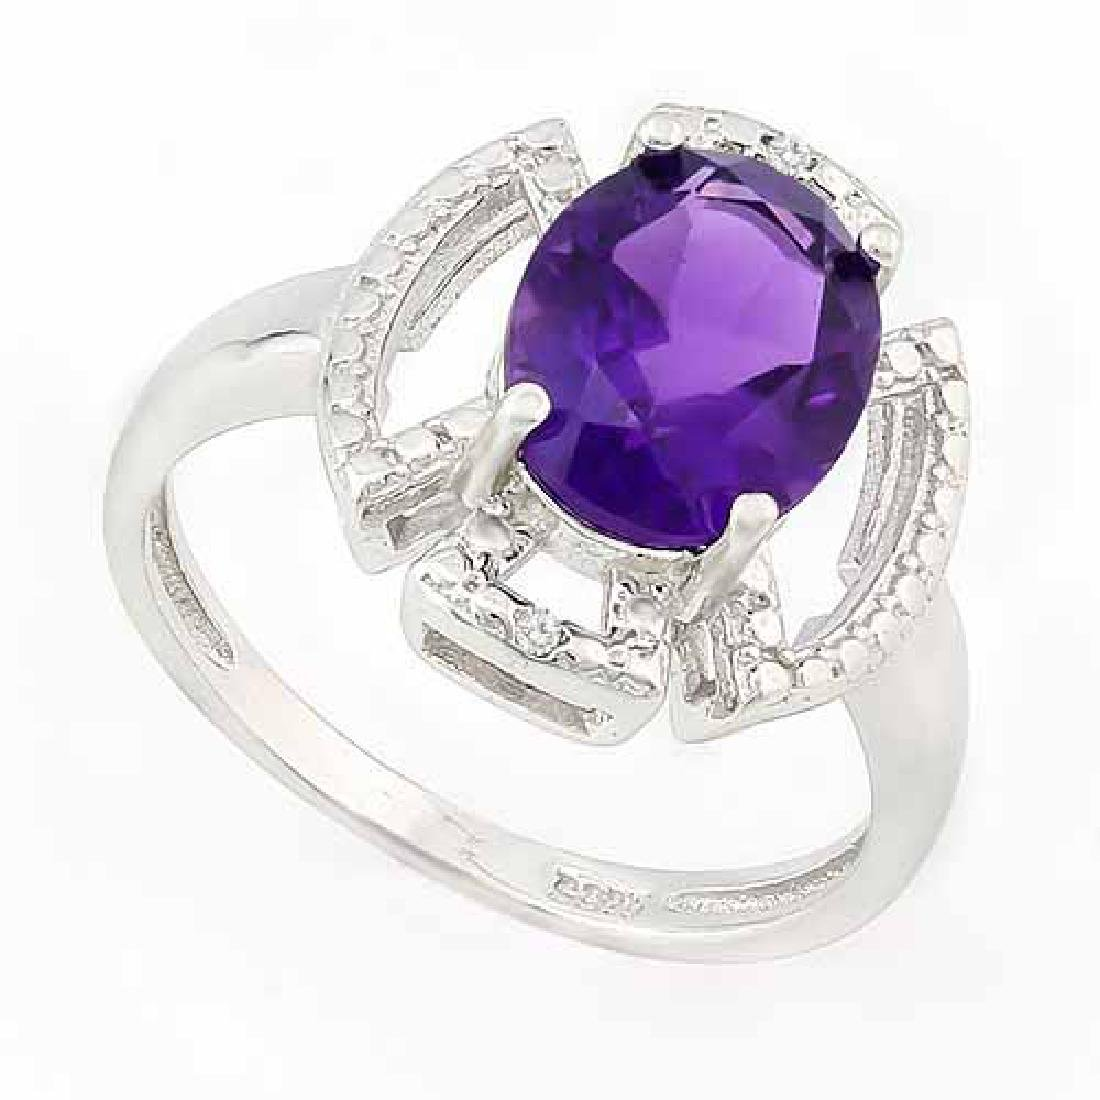 2 1/2 CARAT AMETHYST & GENUINE DIAMONDS 925 STERLING SI